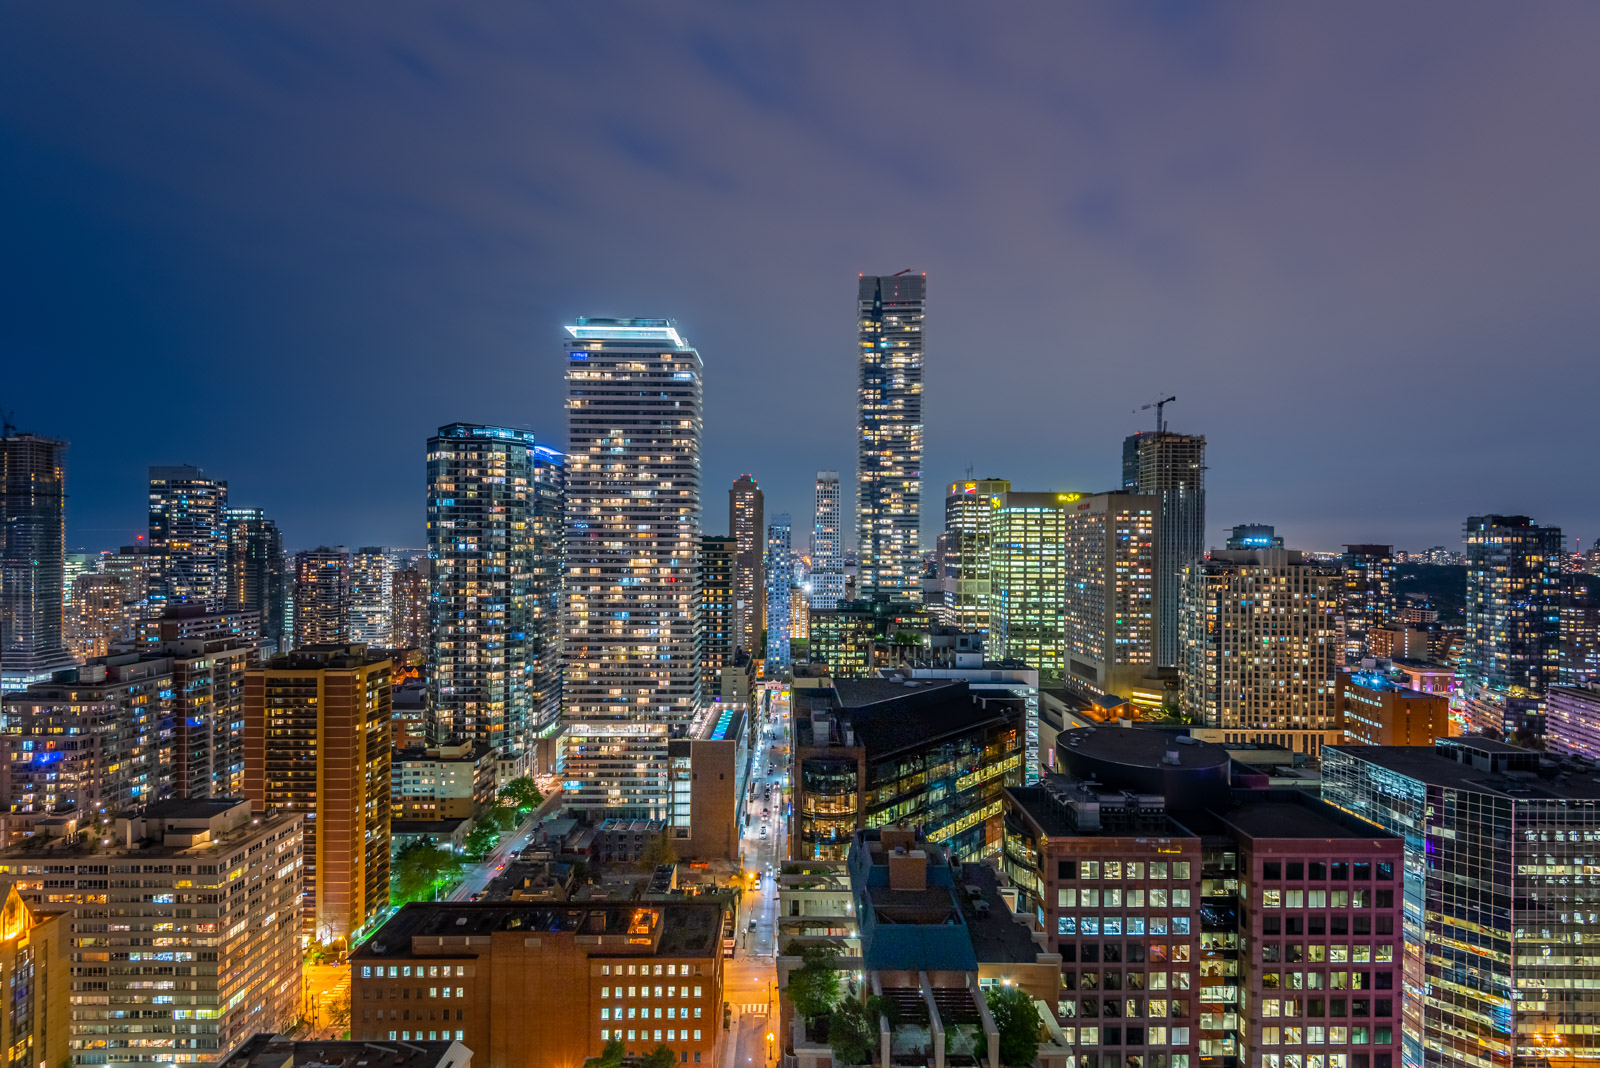 Building lights in Downtown Toronto at night.